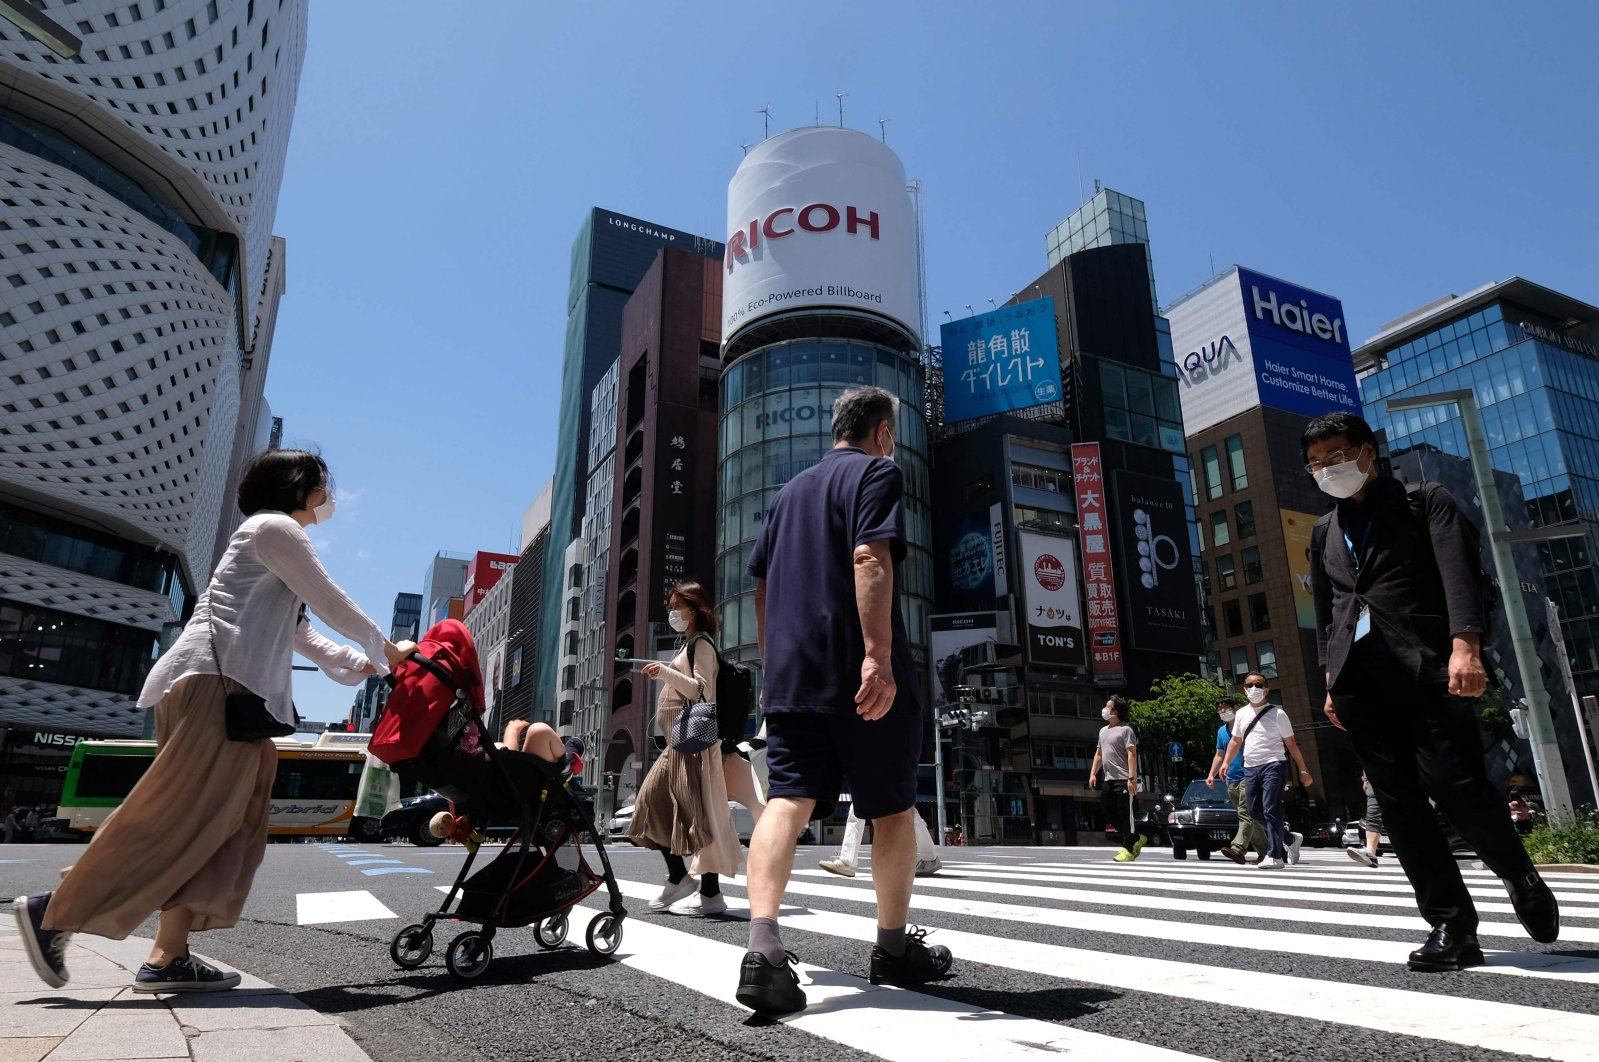 People wearing face masks amid concerns over the spread of the COVID-19 coronavirus cross a street in the Ginza shopping district in Tokyo, May 17, 2020. (AFP Photo)